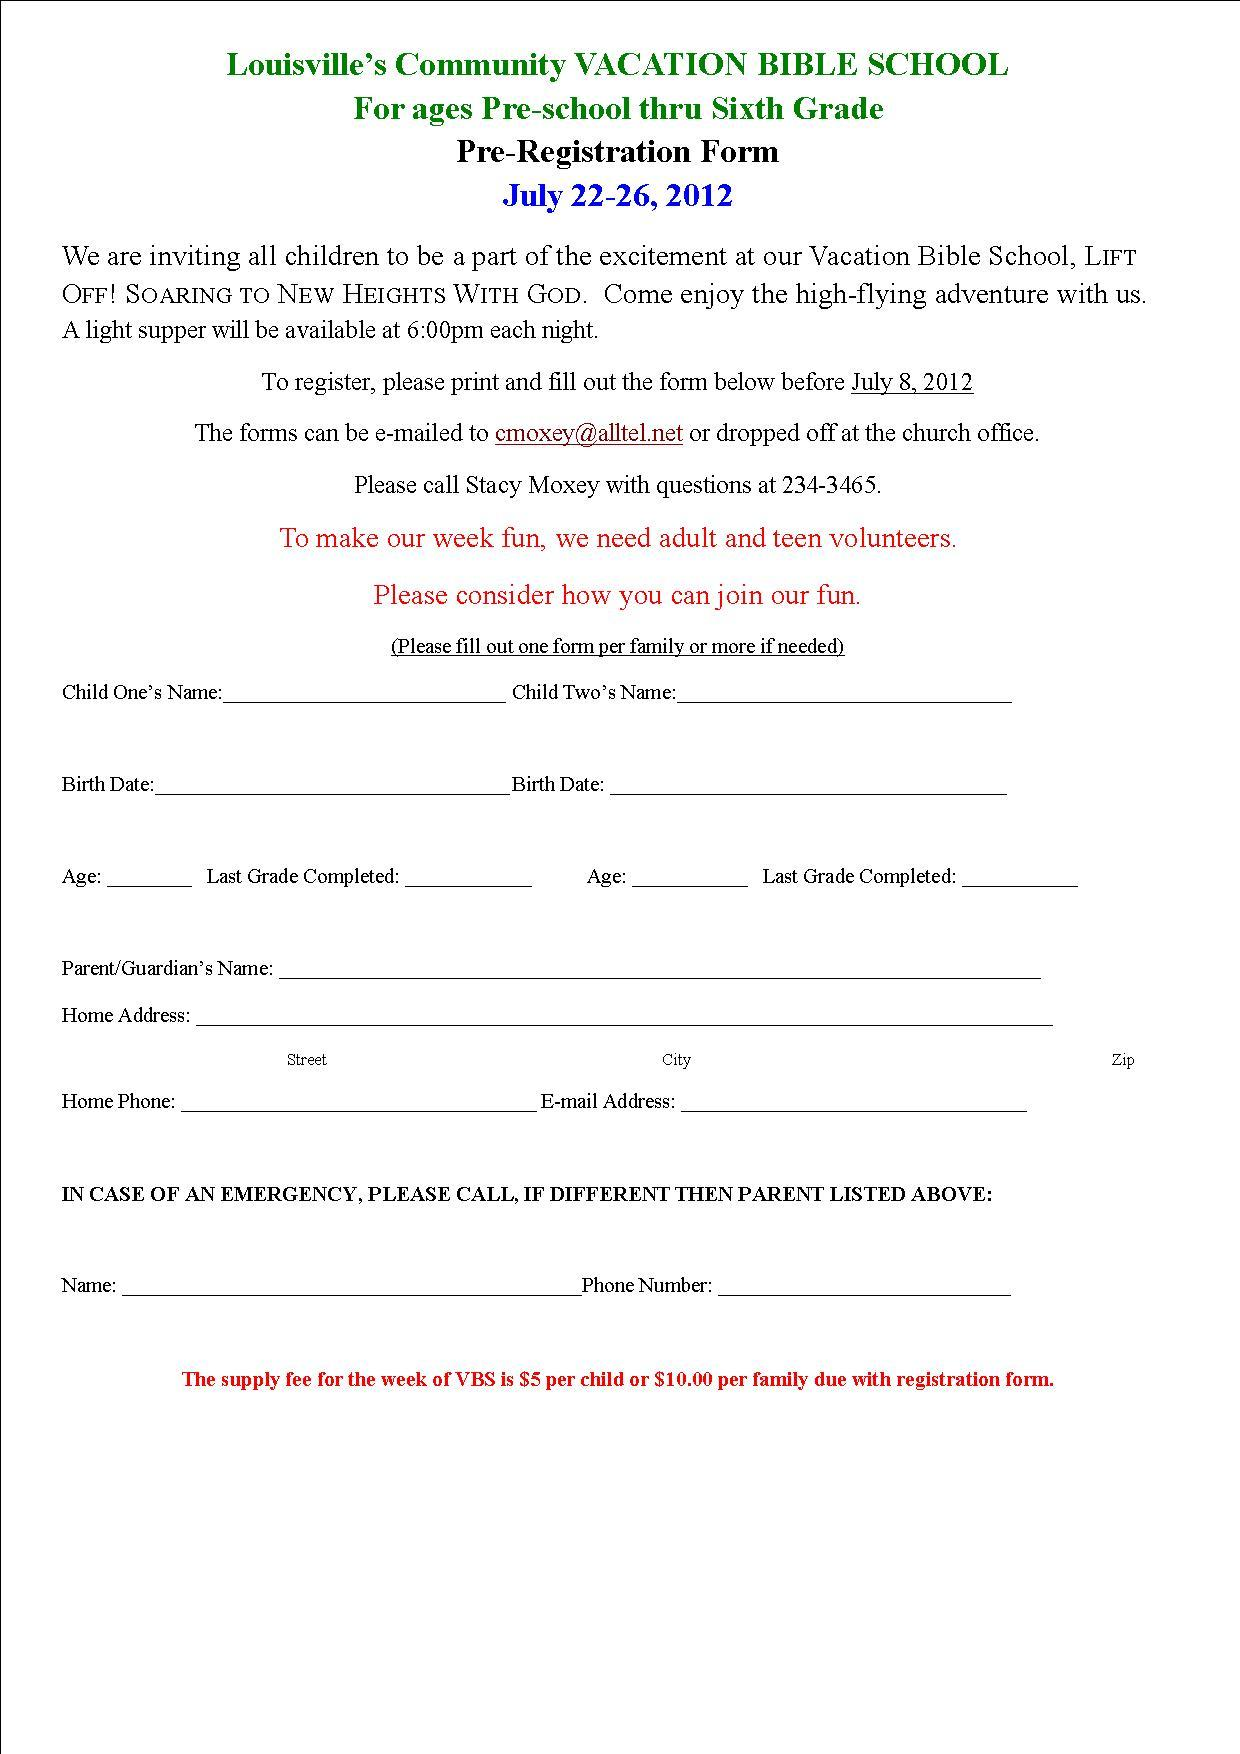 VBS pre_registration_form_2012